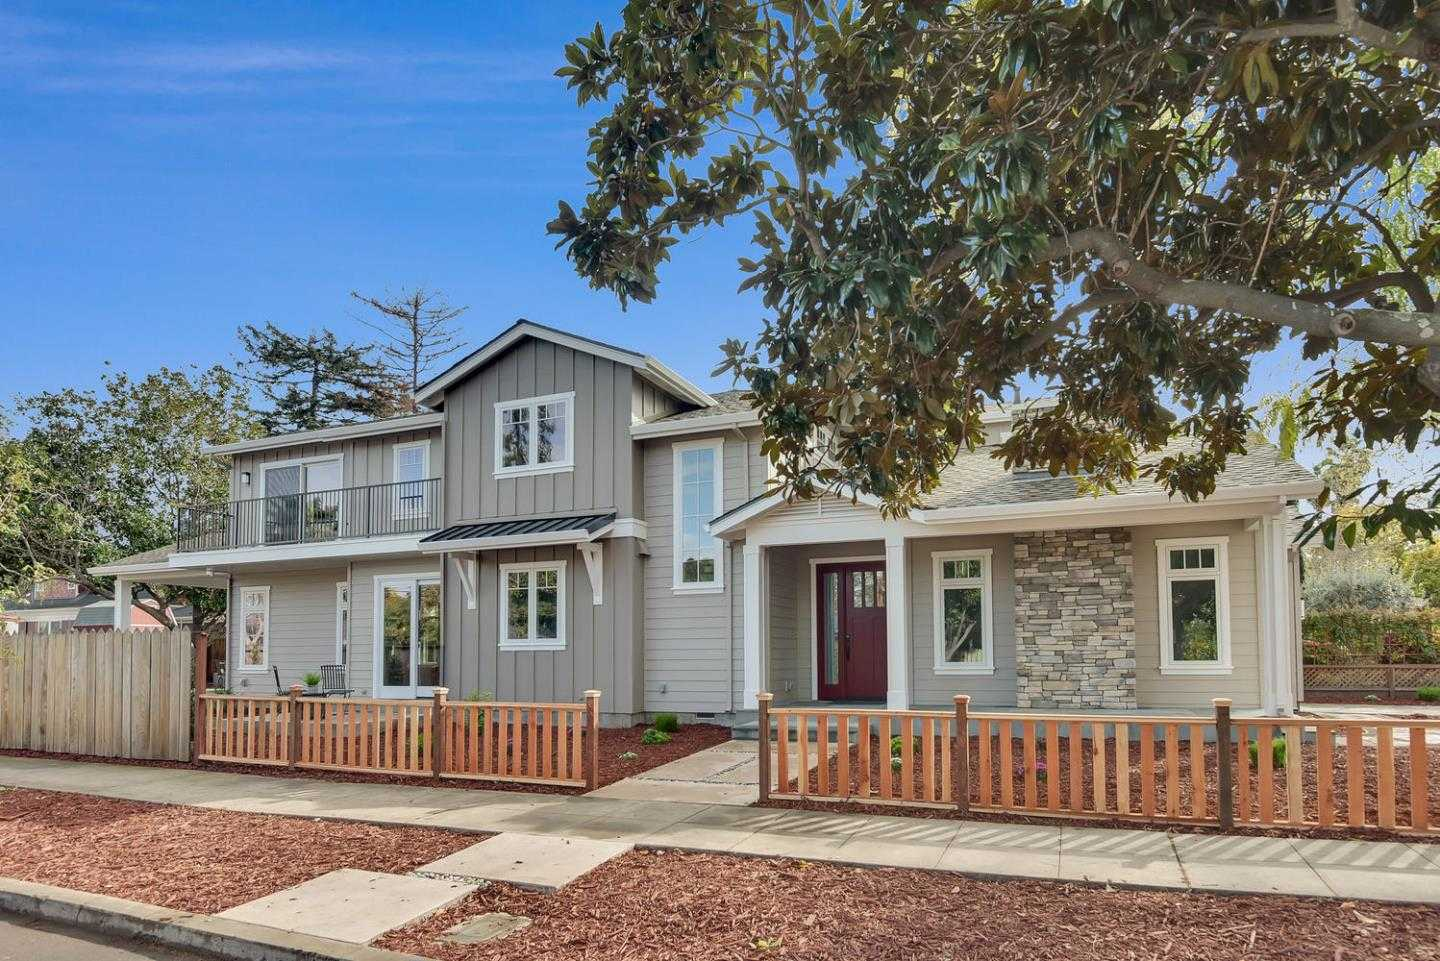 $3,688,000 - 5Br/5Ba -  for Sale in Mountain View